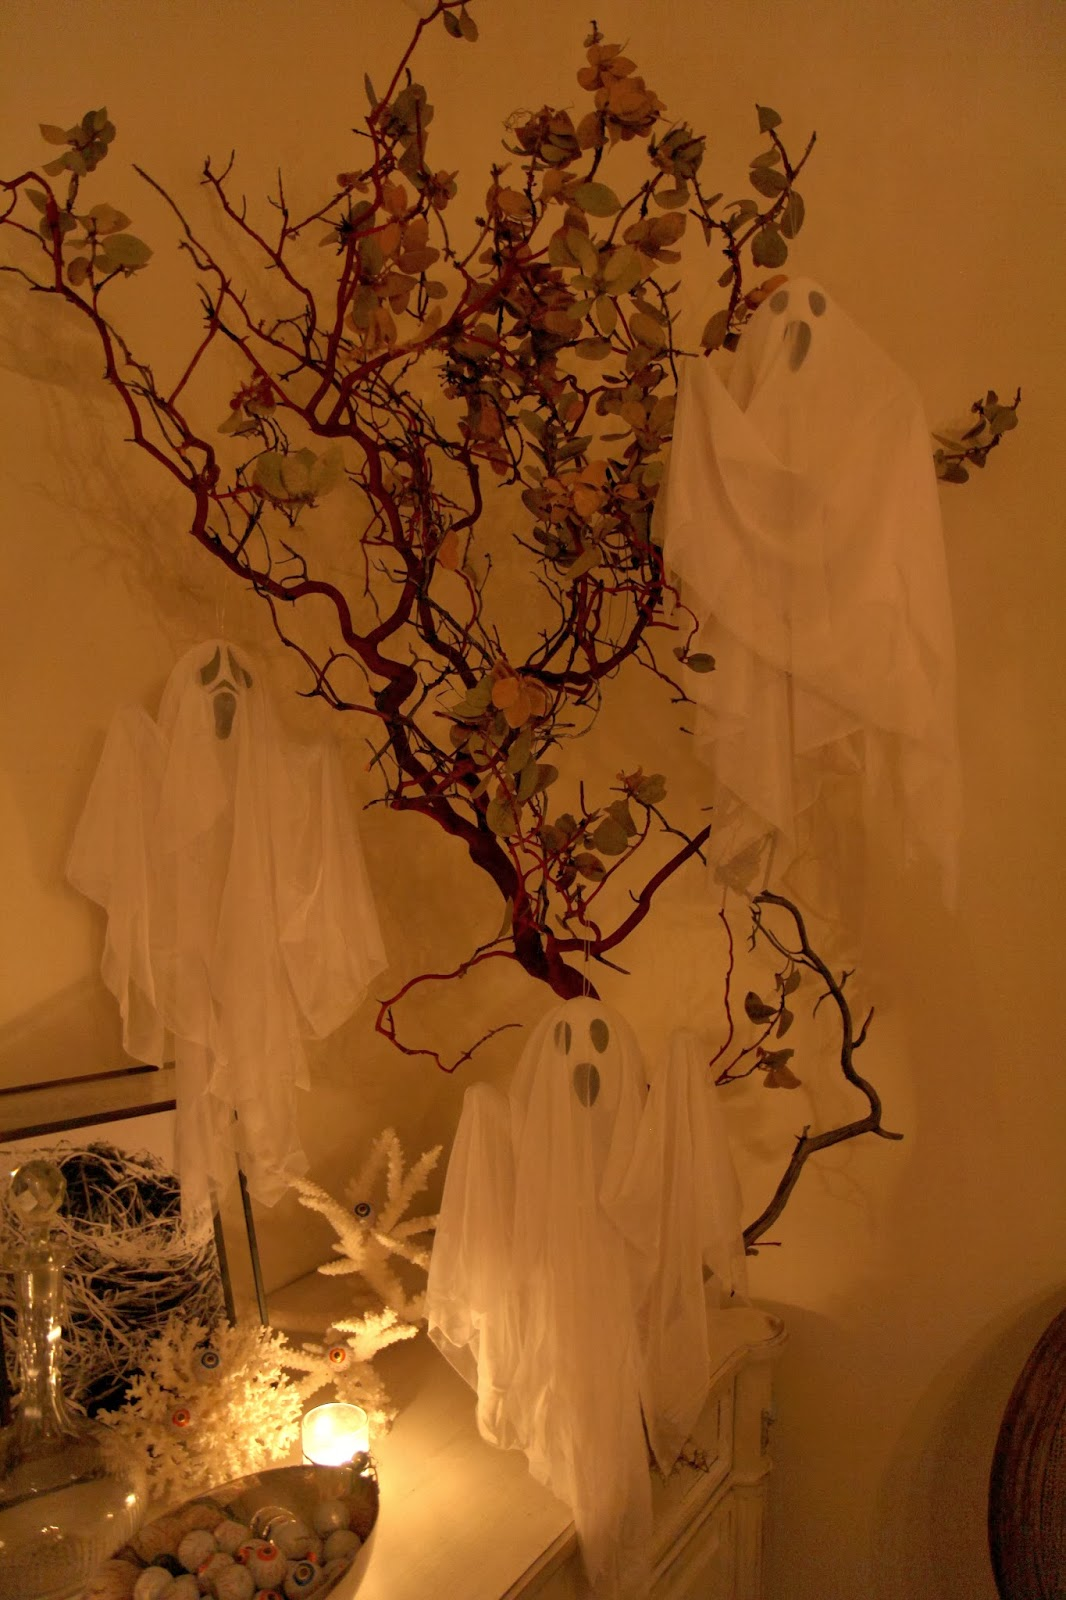 Ghosts flying on Tree Branch; Hauntify Your House for Halloween